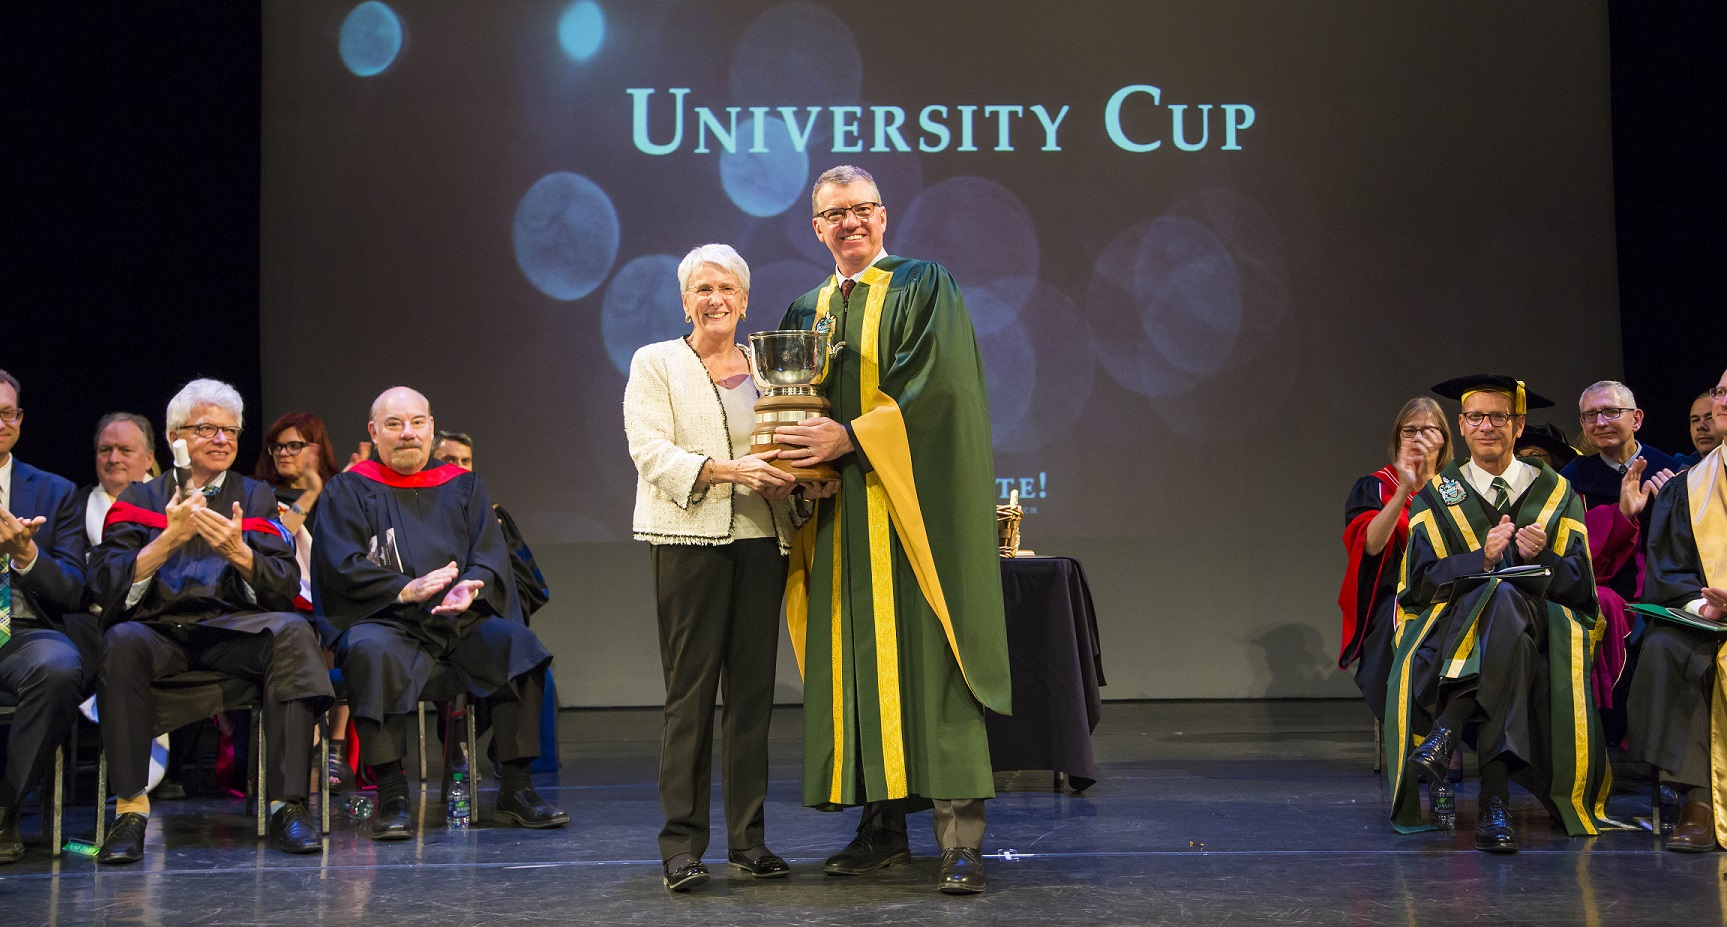 David Turpin with University Cup recipient Janine Brodie at Celebrate! 2017